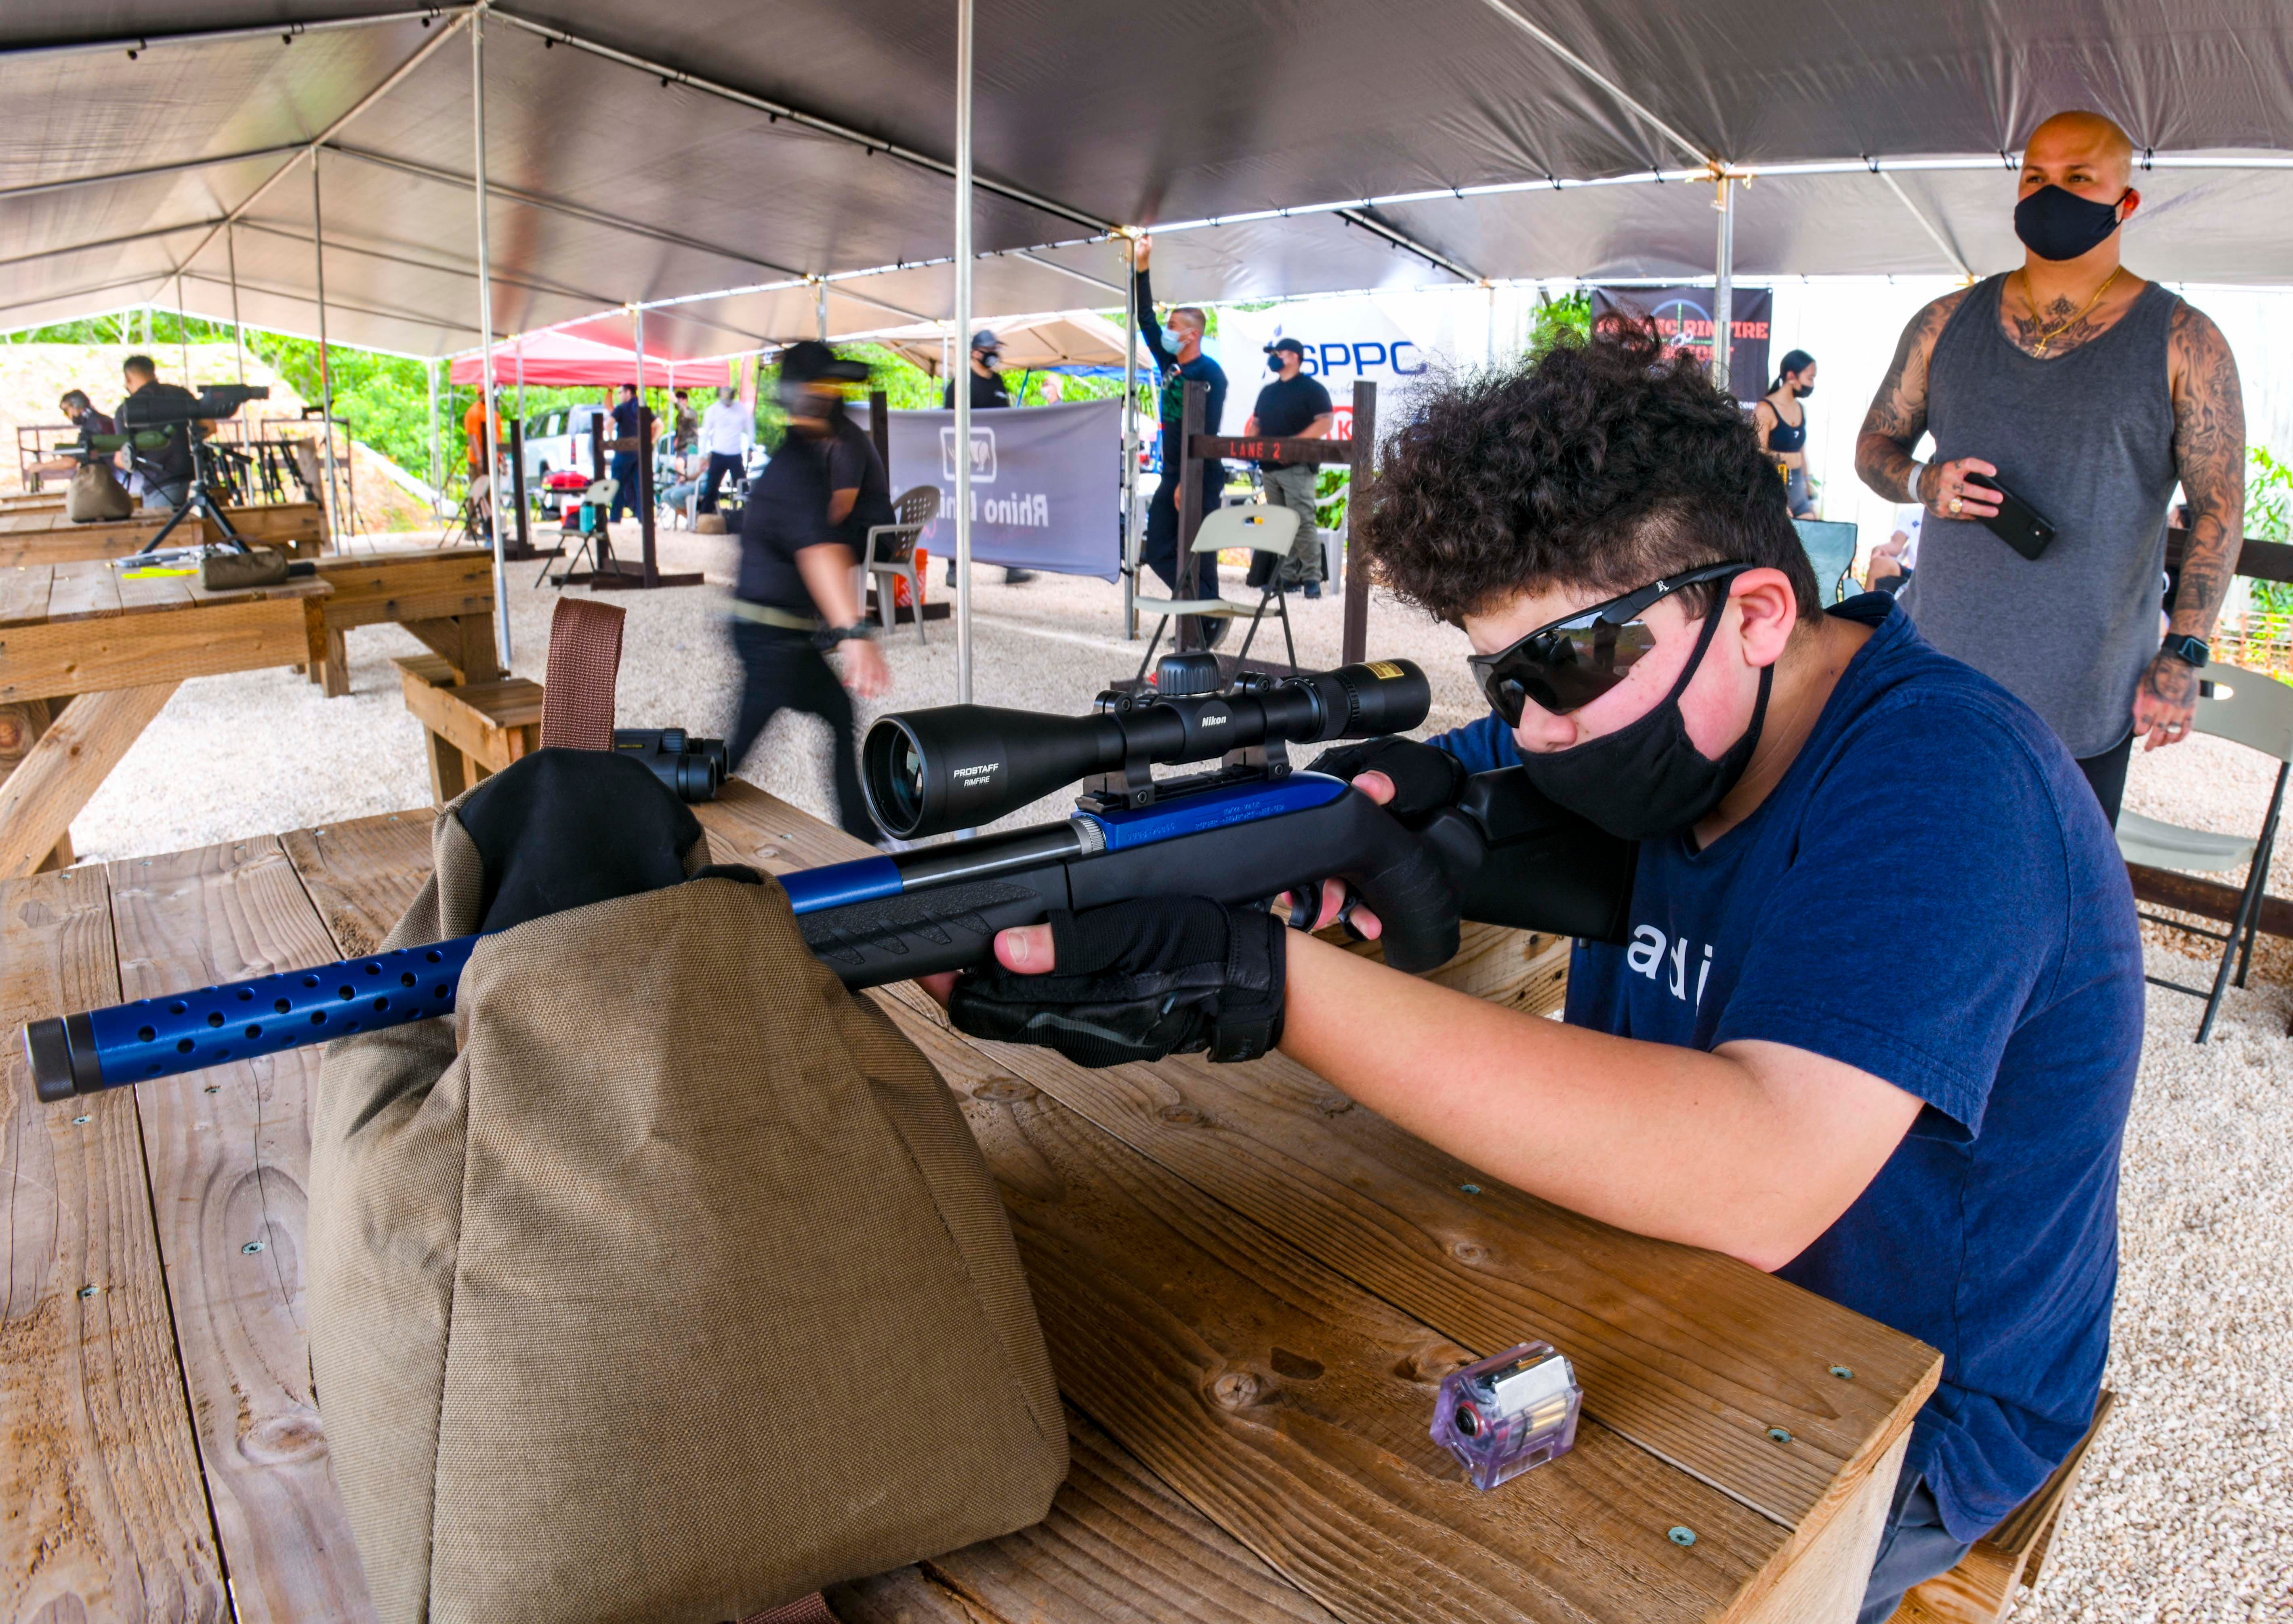 Andrew Martinez, 13, prepares to engage targets downrange as his father, Alberto Martinez, watches from behind during the Pacific Rimfire Shootout at the Sportsland Outdoor Shooting Range in Dededo on Saturday, May 8, 2021.